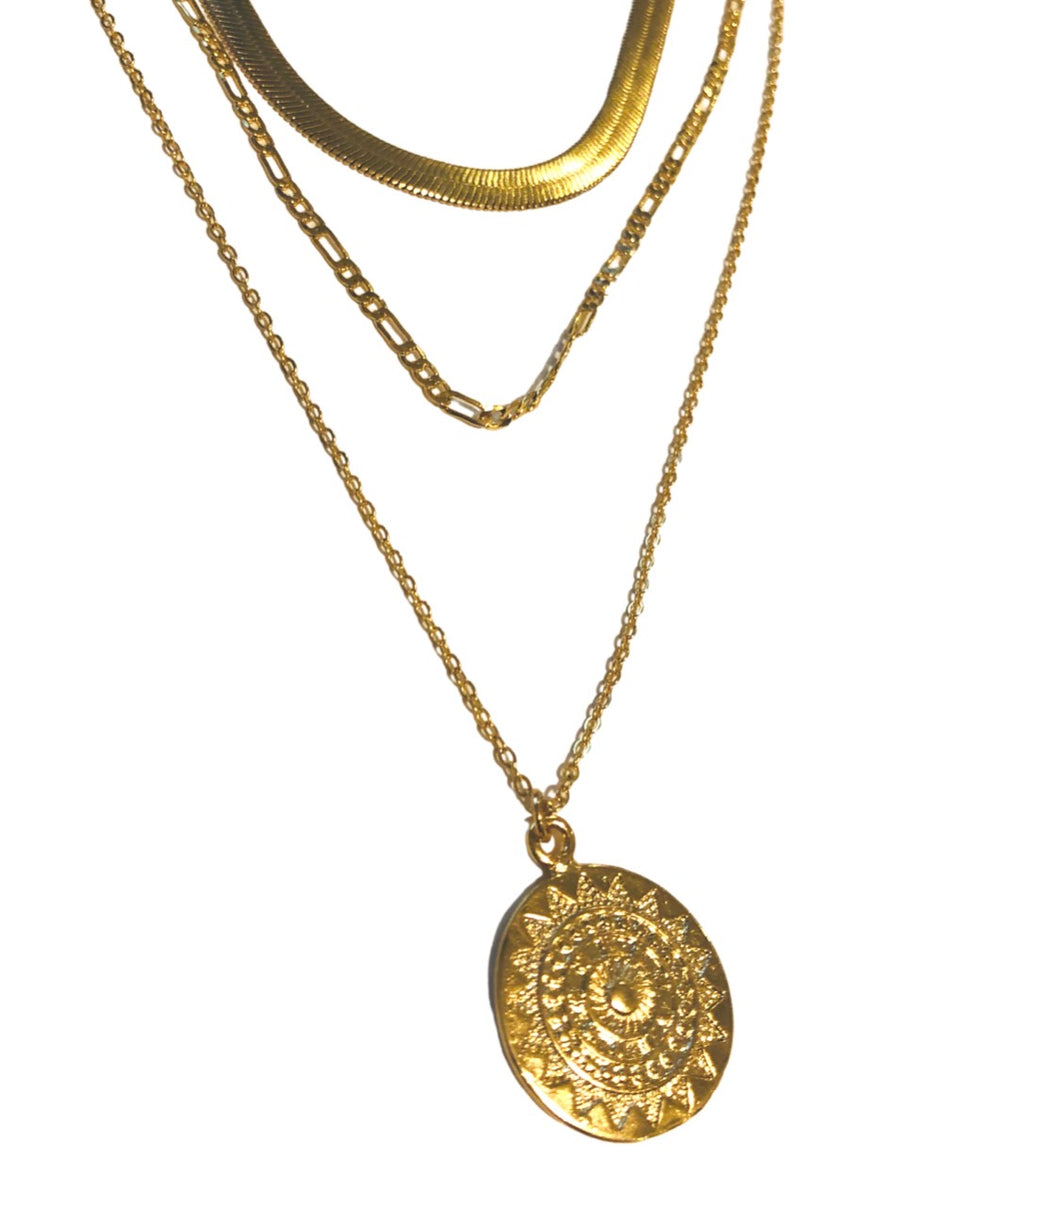 14KT Gold Plated Sterling LG Herringbone Necklace